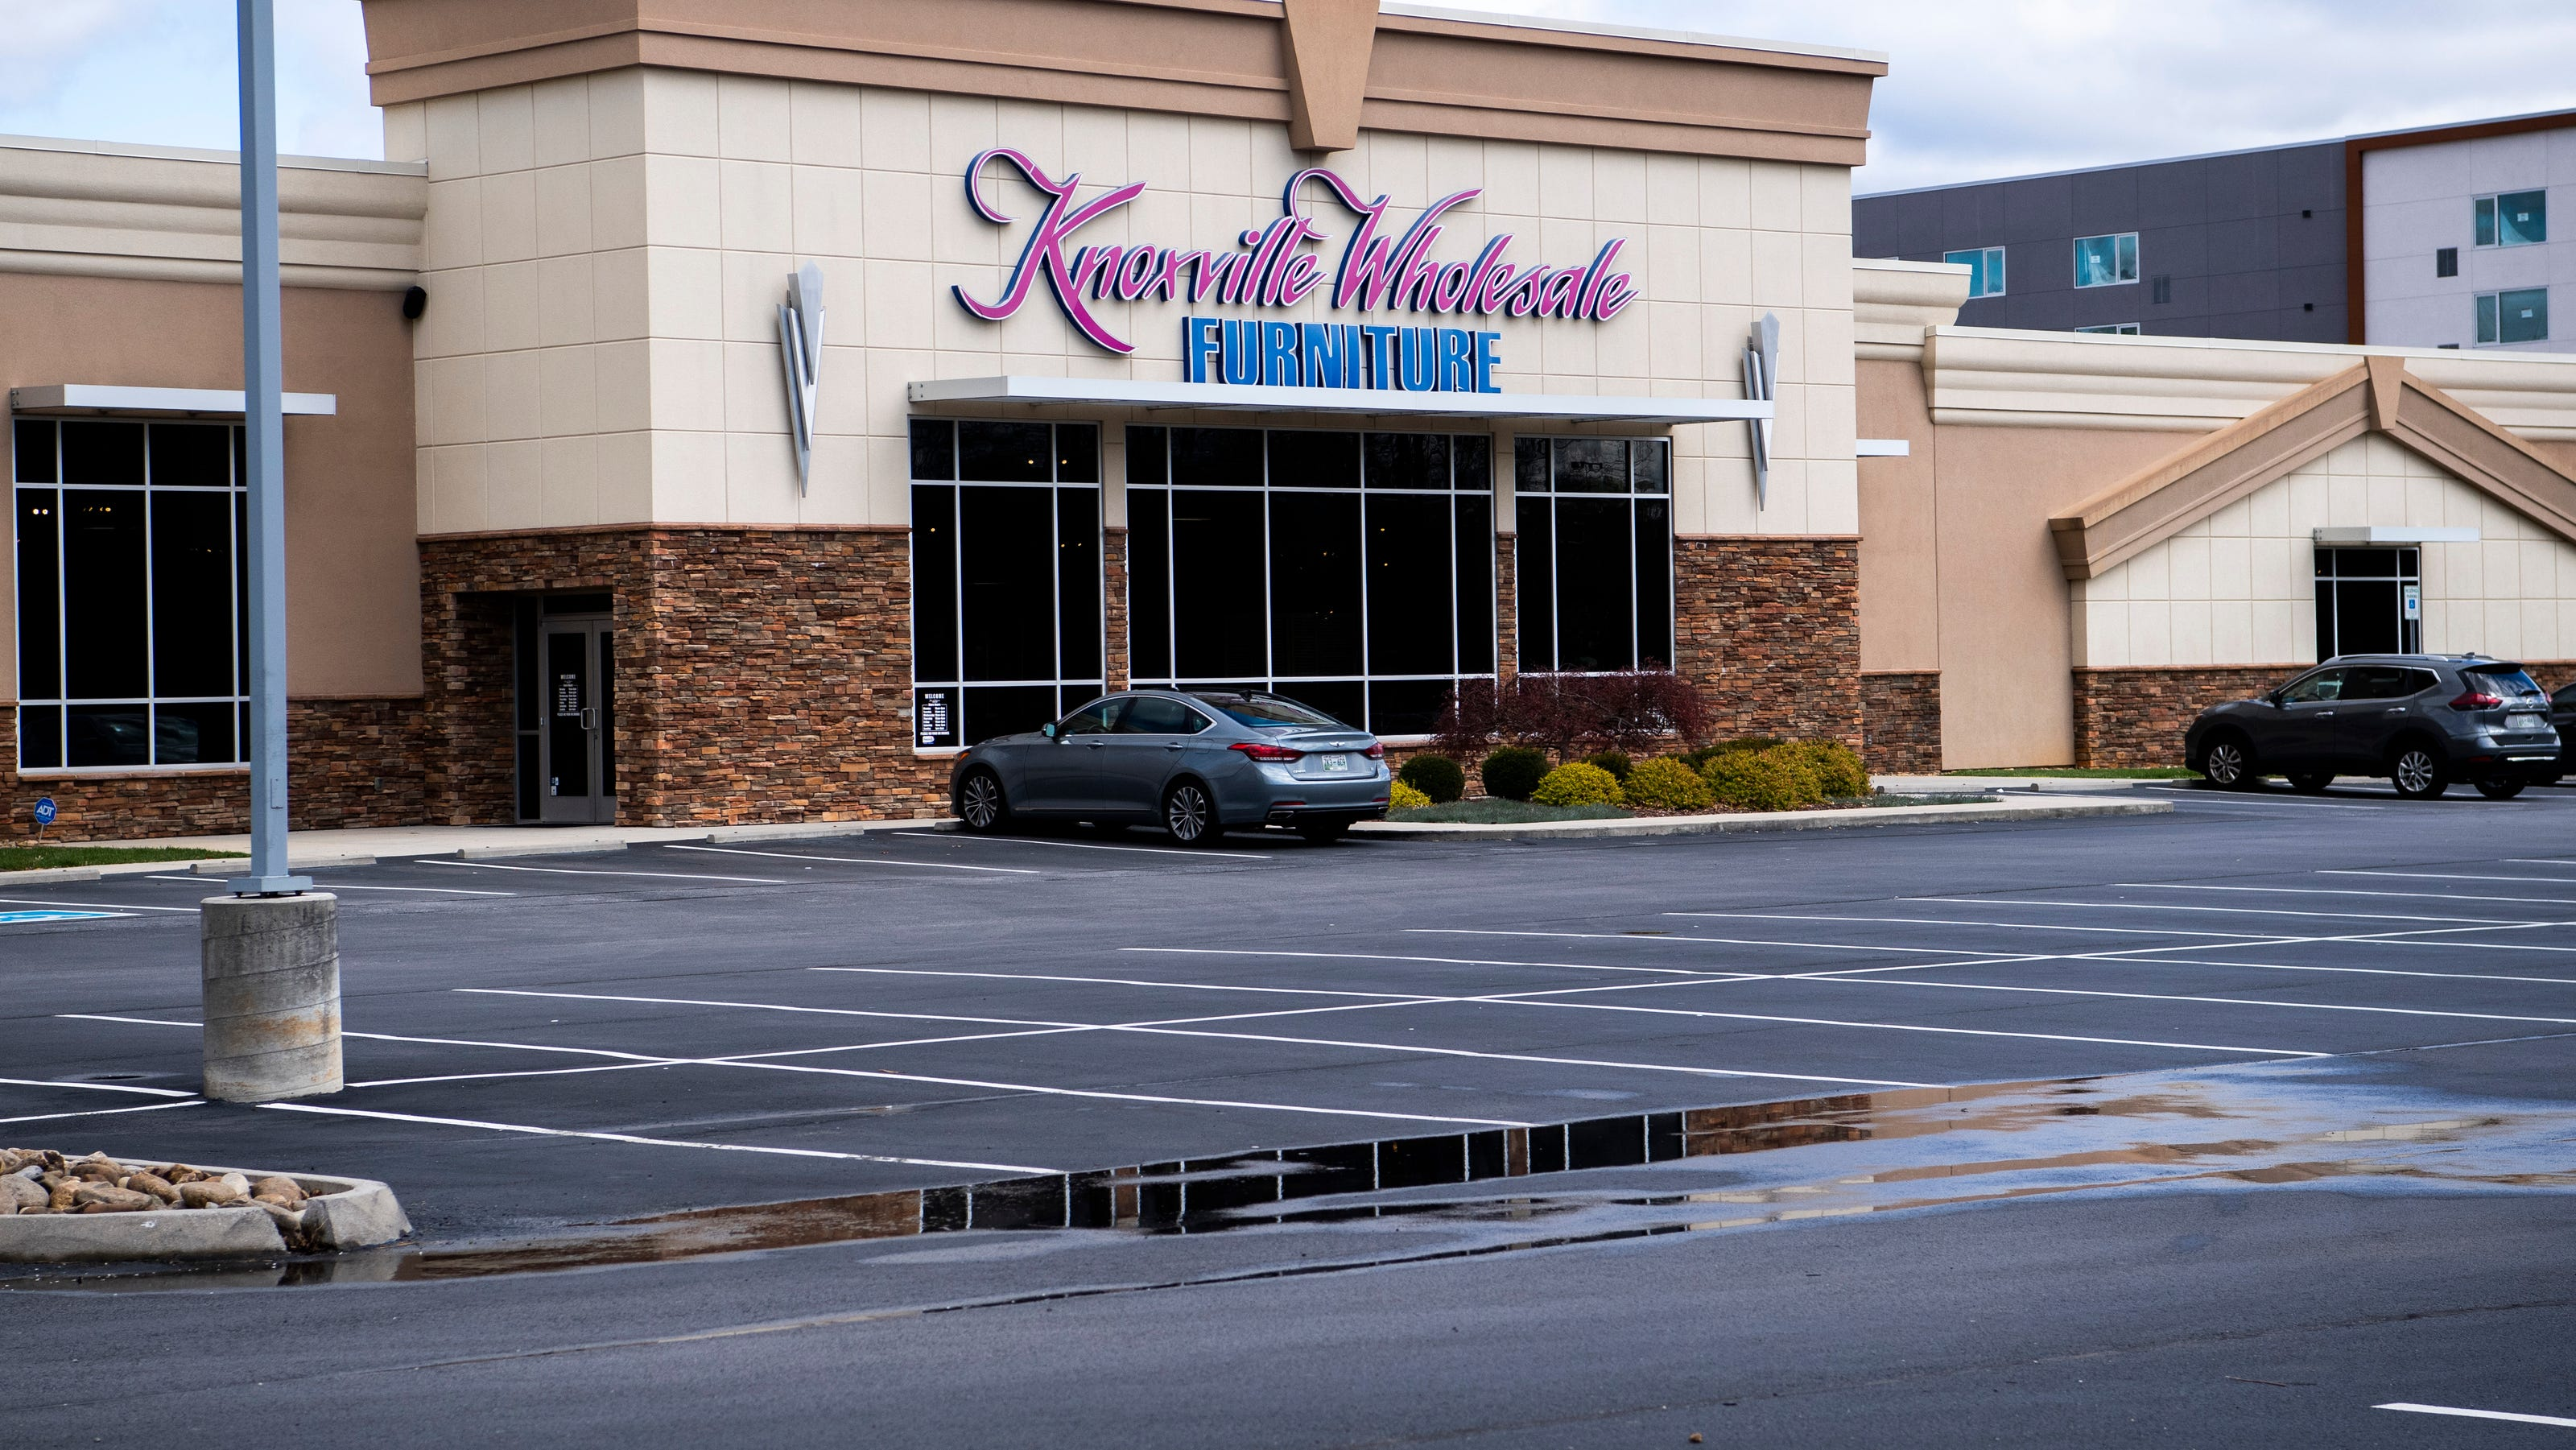 These Knoxville businesses ignored coronavirus safer-at home-orders